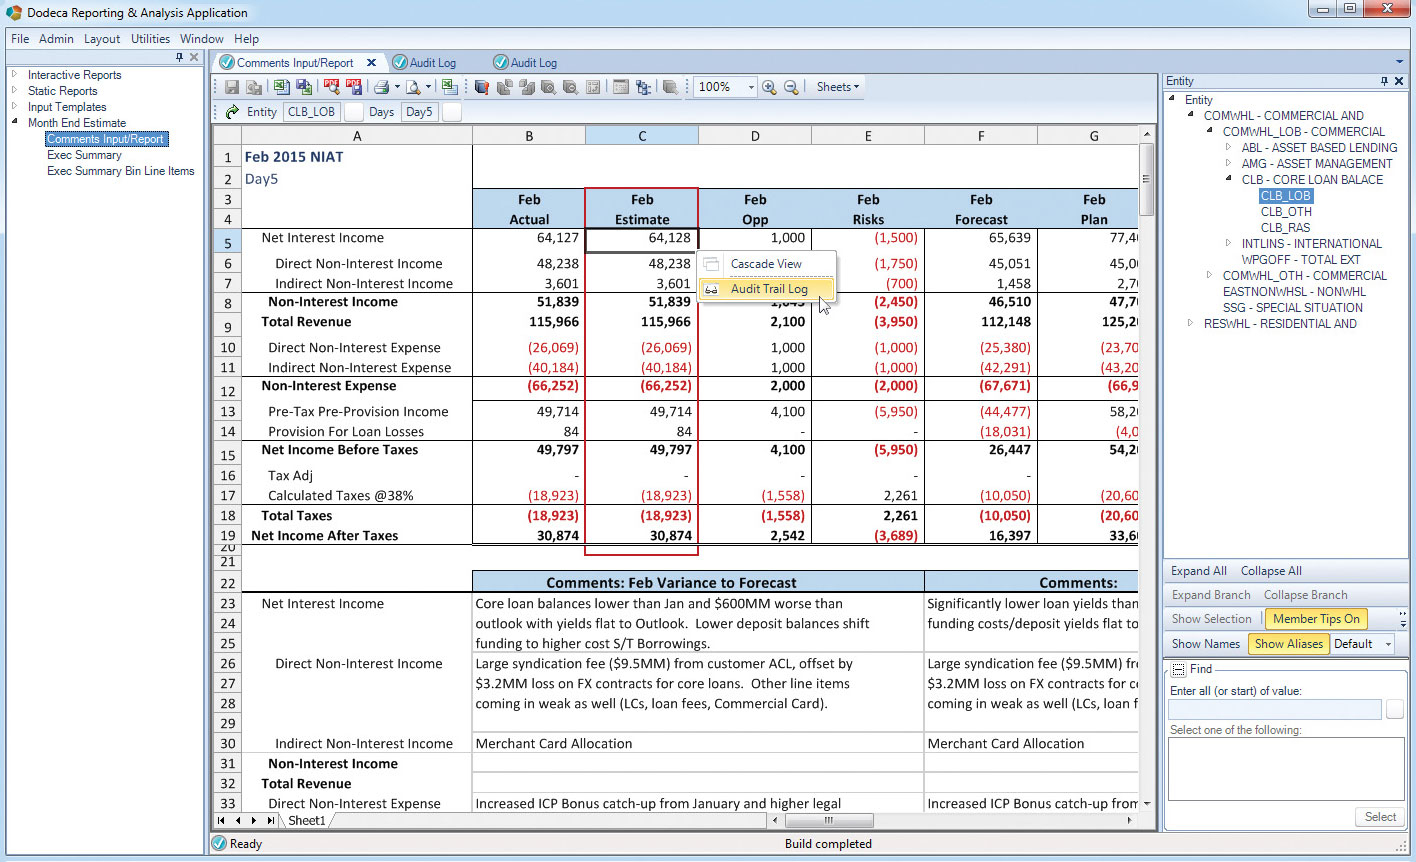 Spreadsheet Auditing Software Free For Managing Spreadsheet Risk: Dodeca Spreadsheet Management System